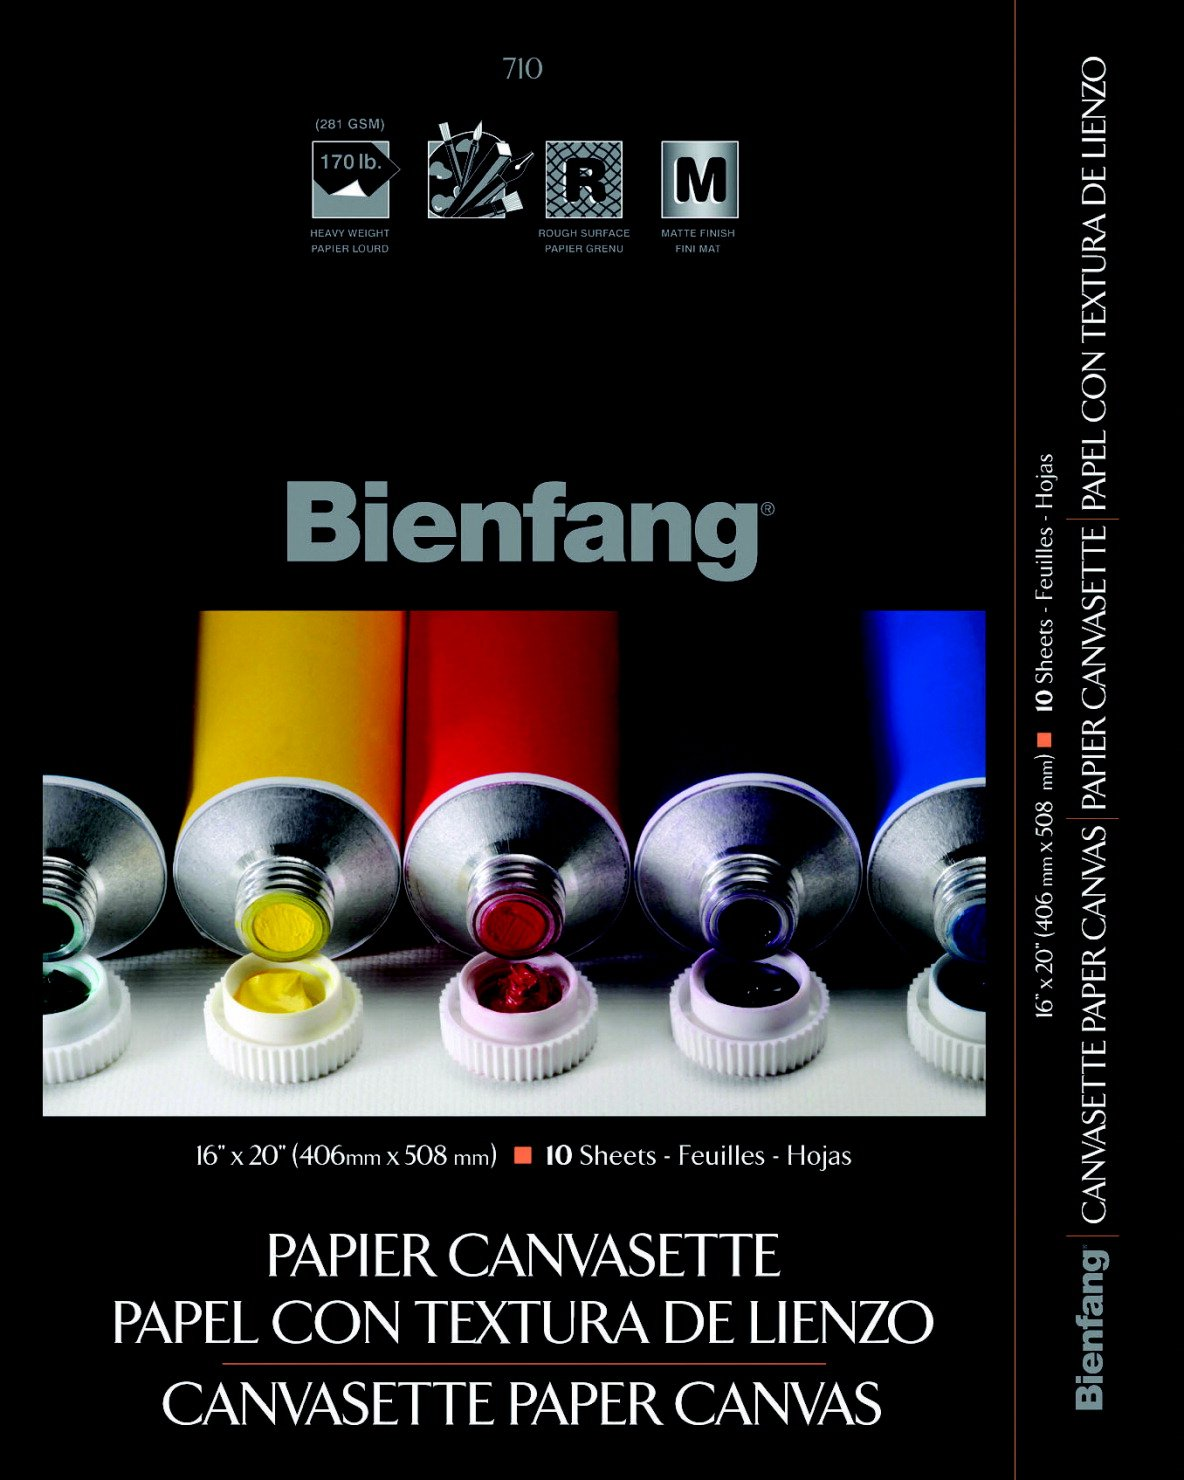 Canvasette Paper Pad Size: 16'' H x 20'' W by Bienfang